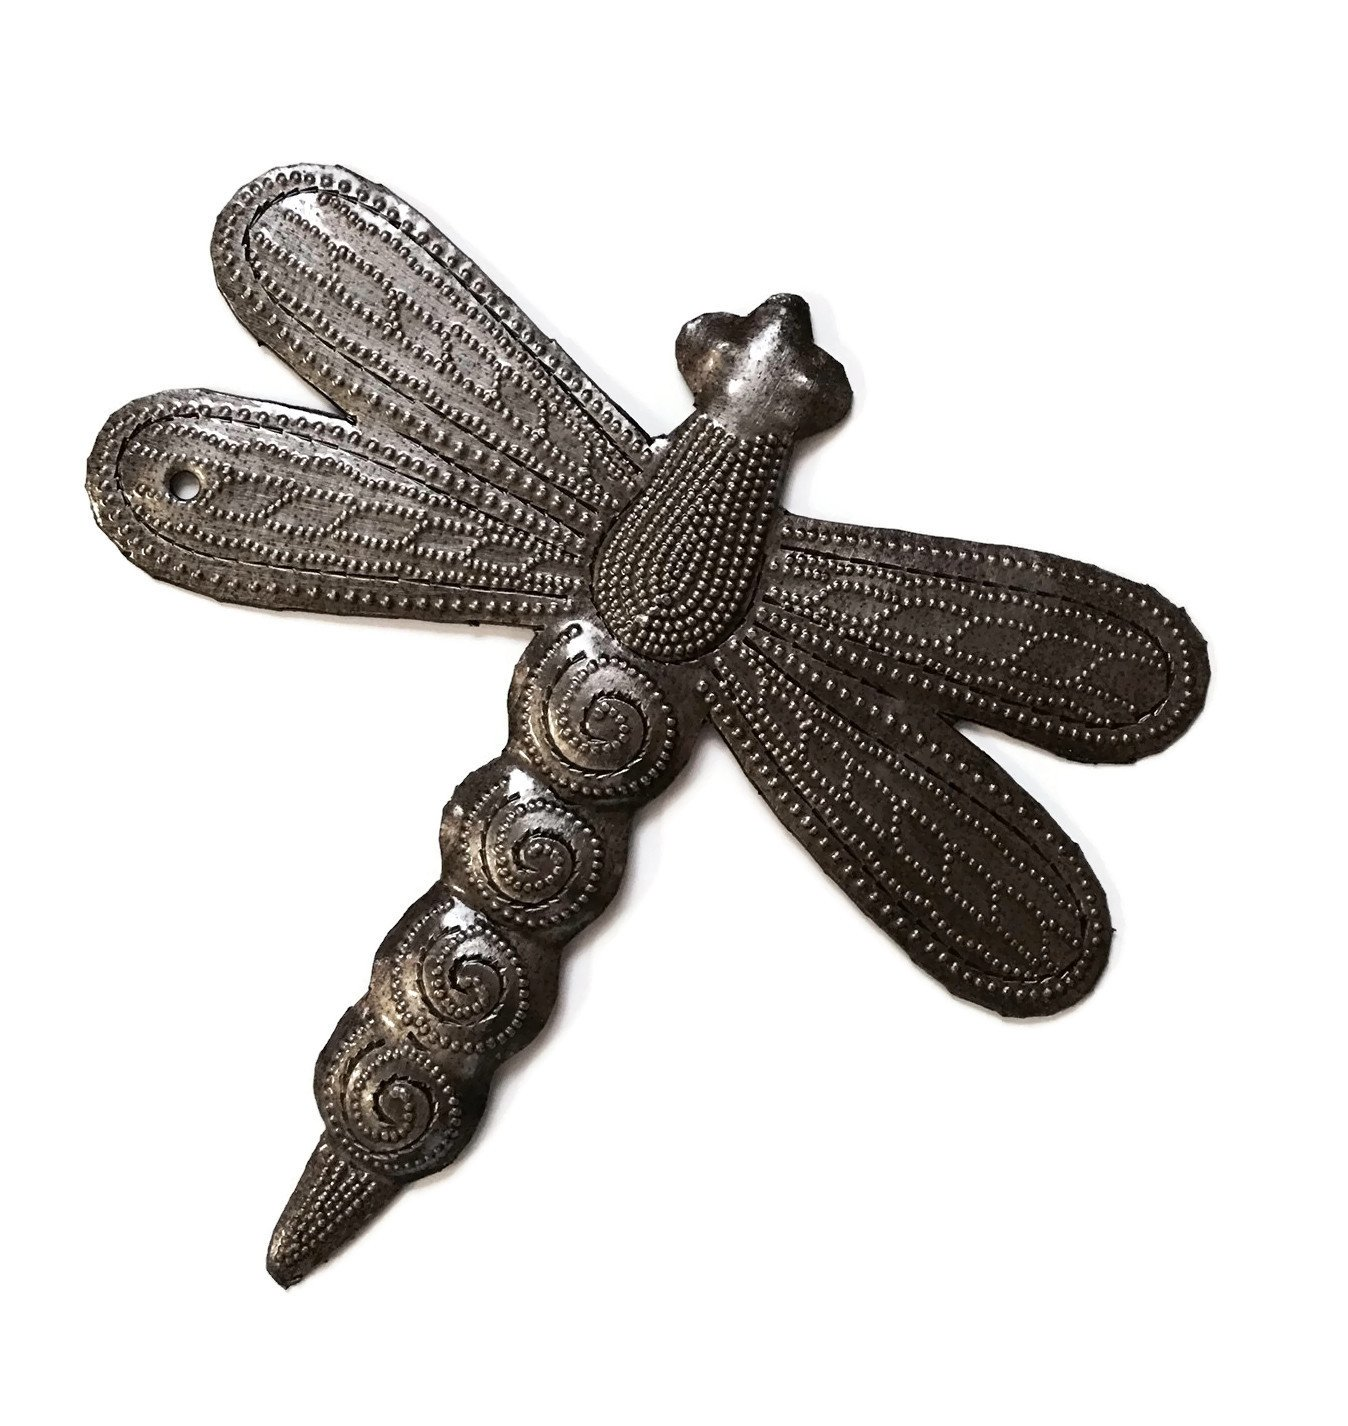 Set of 3 Small Garden Dragonflies 6 Inches, Quality Recycled Metal from Haiti, Backyard Decor - Dragonflies are harbingers of summer showers and renewal. These three are a delightful set, ready to hum through your garden and bring on the quenching rains! Fair trade is the name of the game, and it's the only way we play. - living-room-decor, living-room, home-decor - 71kMBA2Do6L -